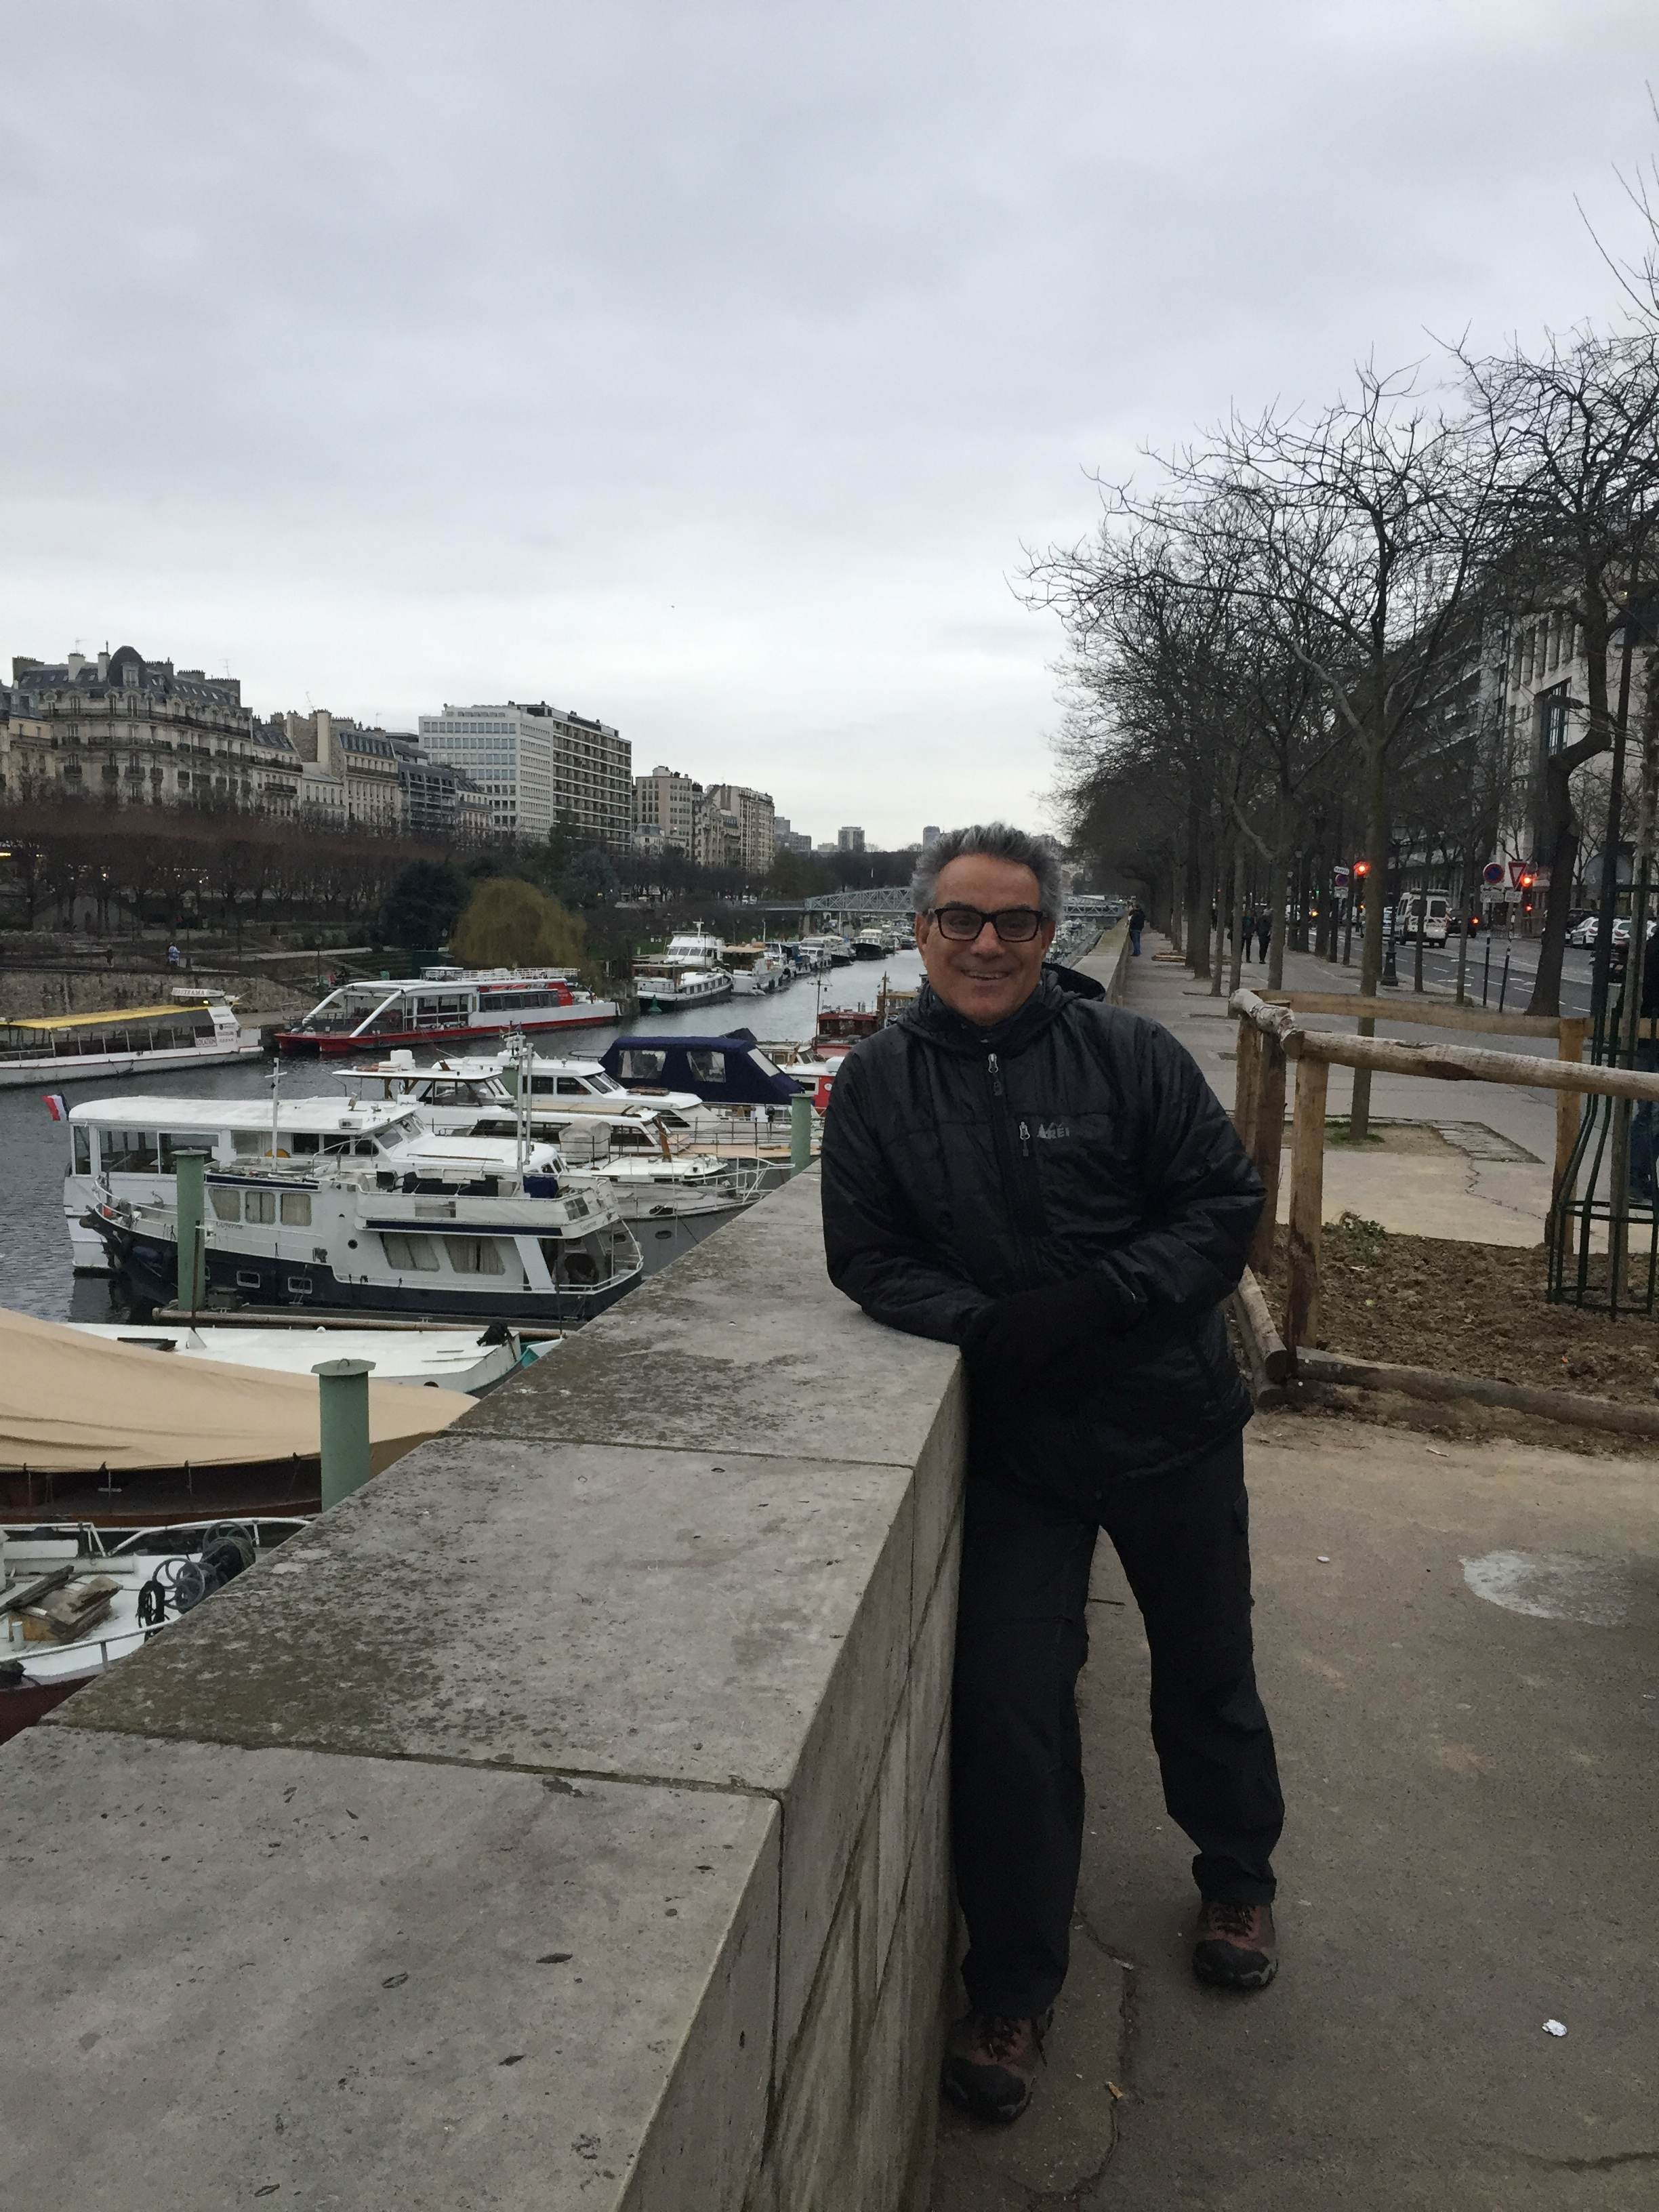 Frank at the Seine